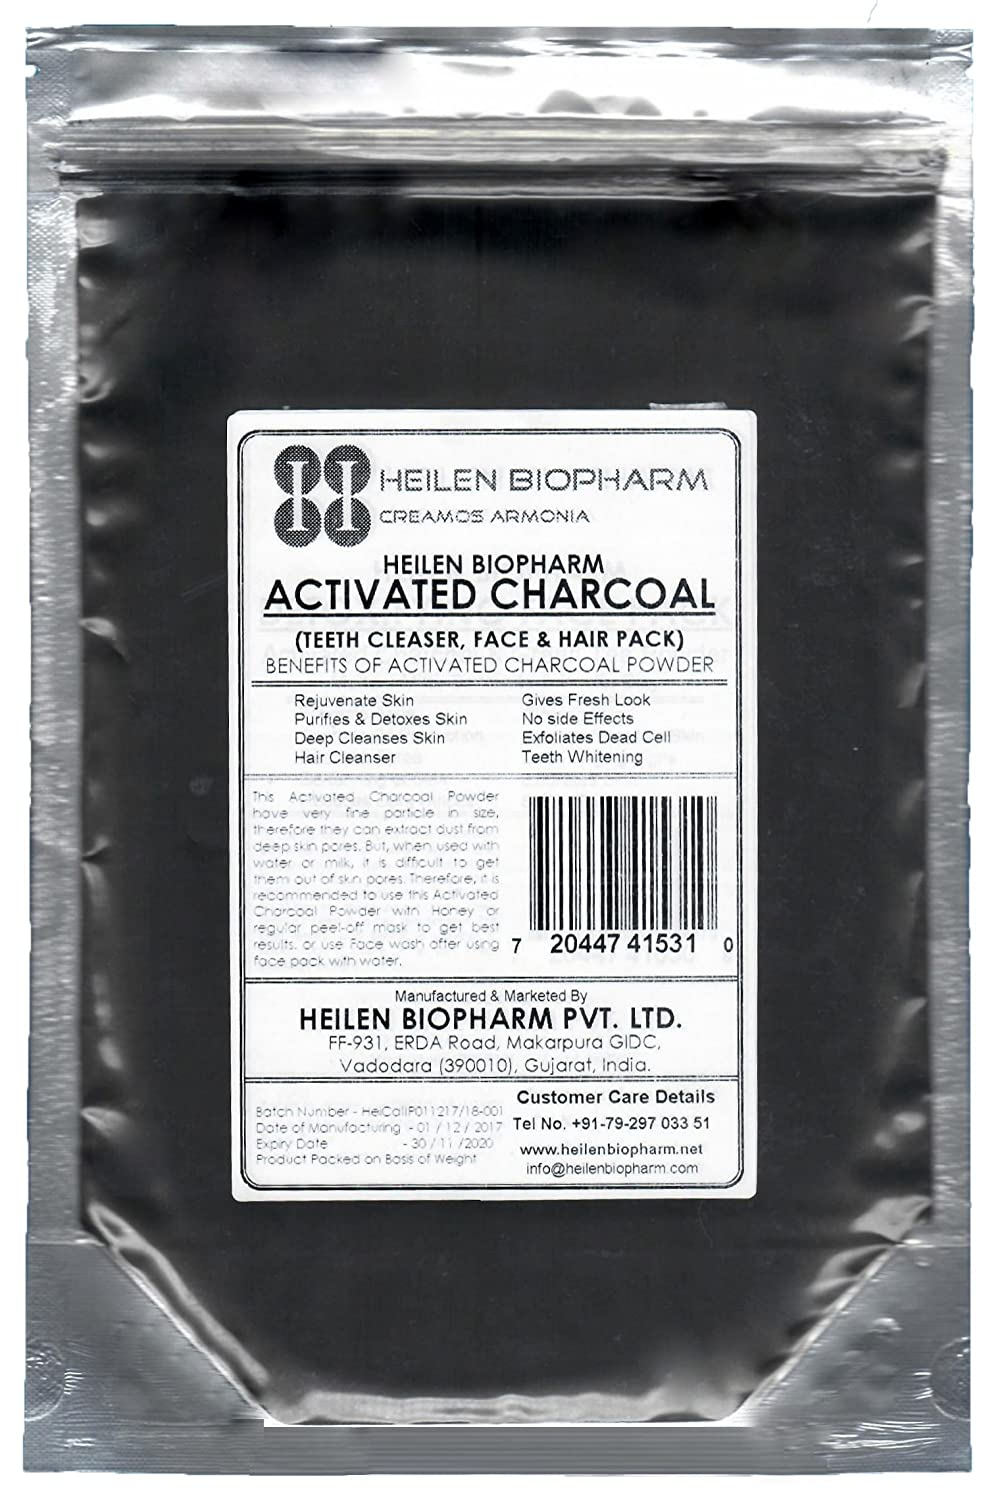 Polvere di carbone attivo per Face Pack (Activated Charcoal Powder for Face Pack) (400 gm / 14 oz / 0.88 lb)